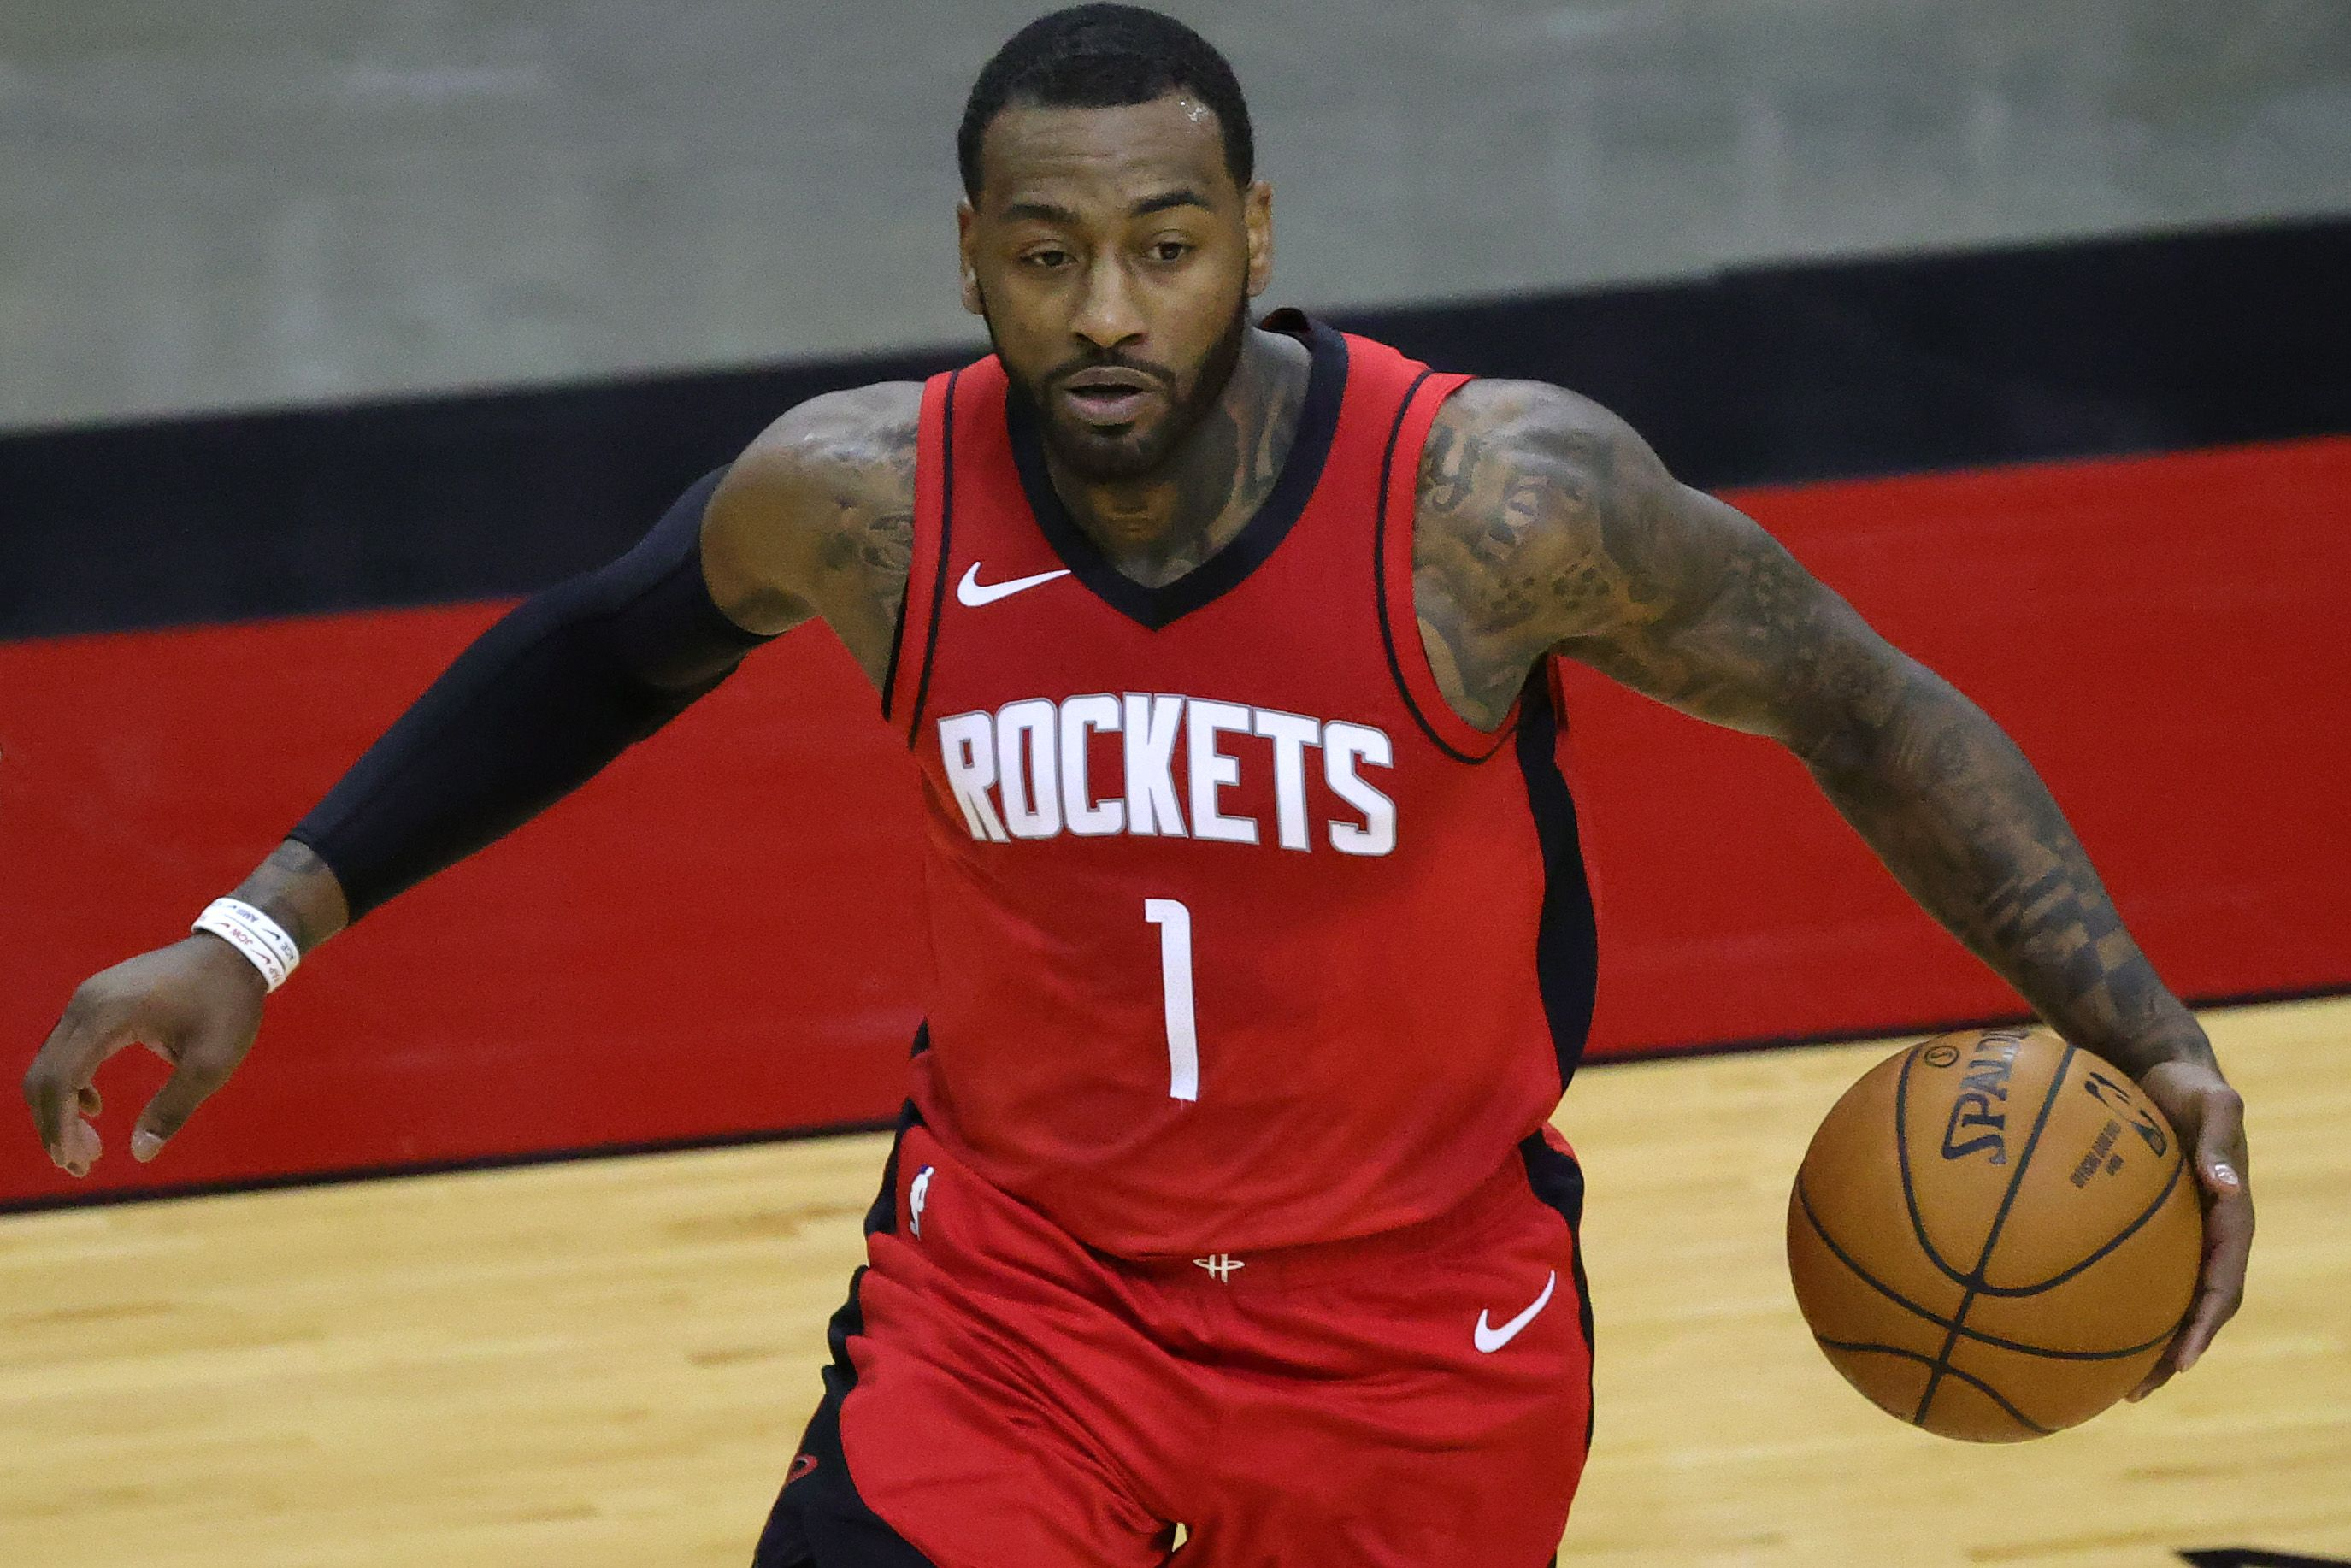 John Wall making plays for the Rockets